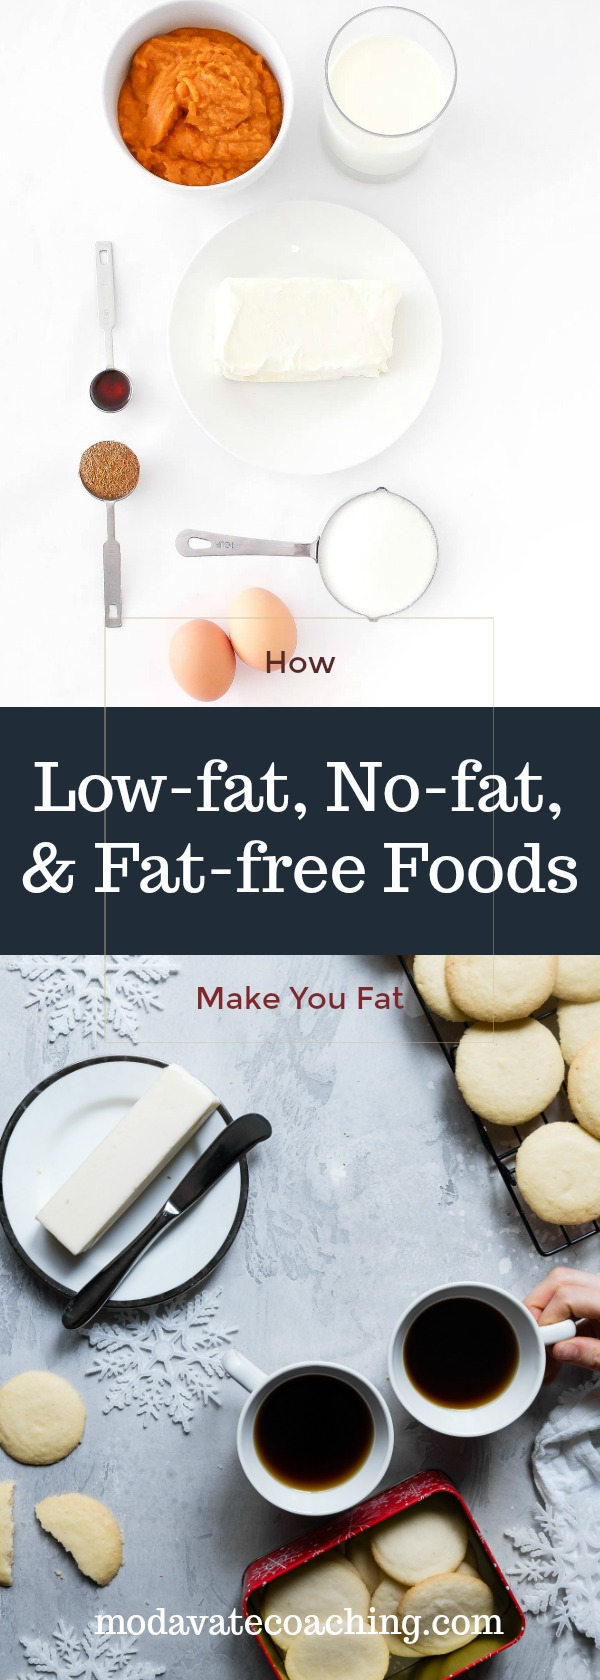 How Low-fat, No-fat, & Fat-free Foods Will Make You Fat